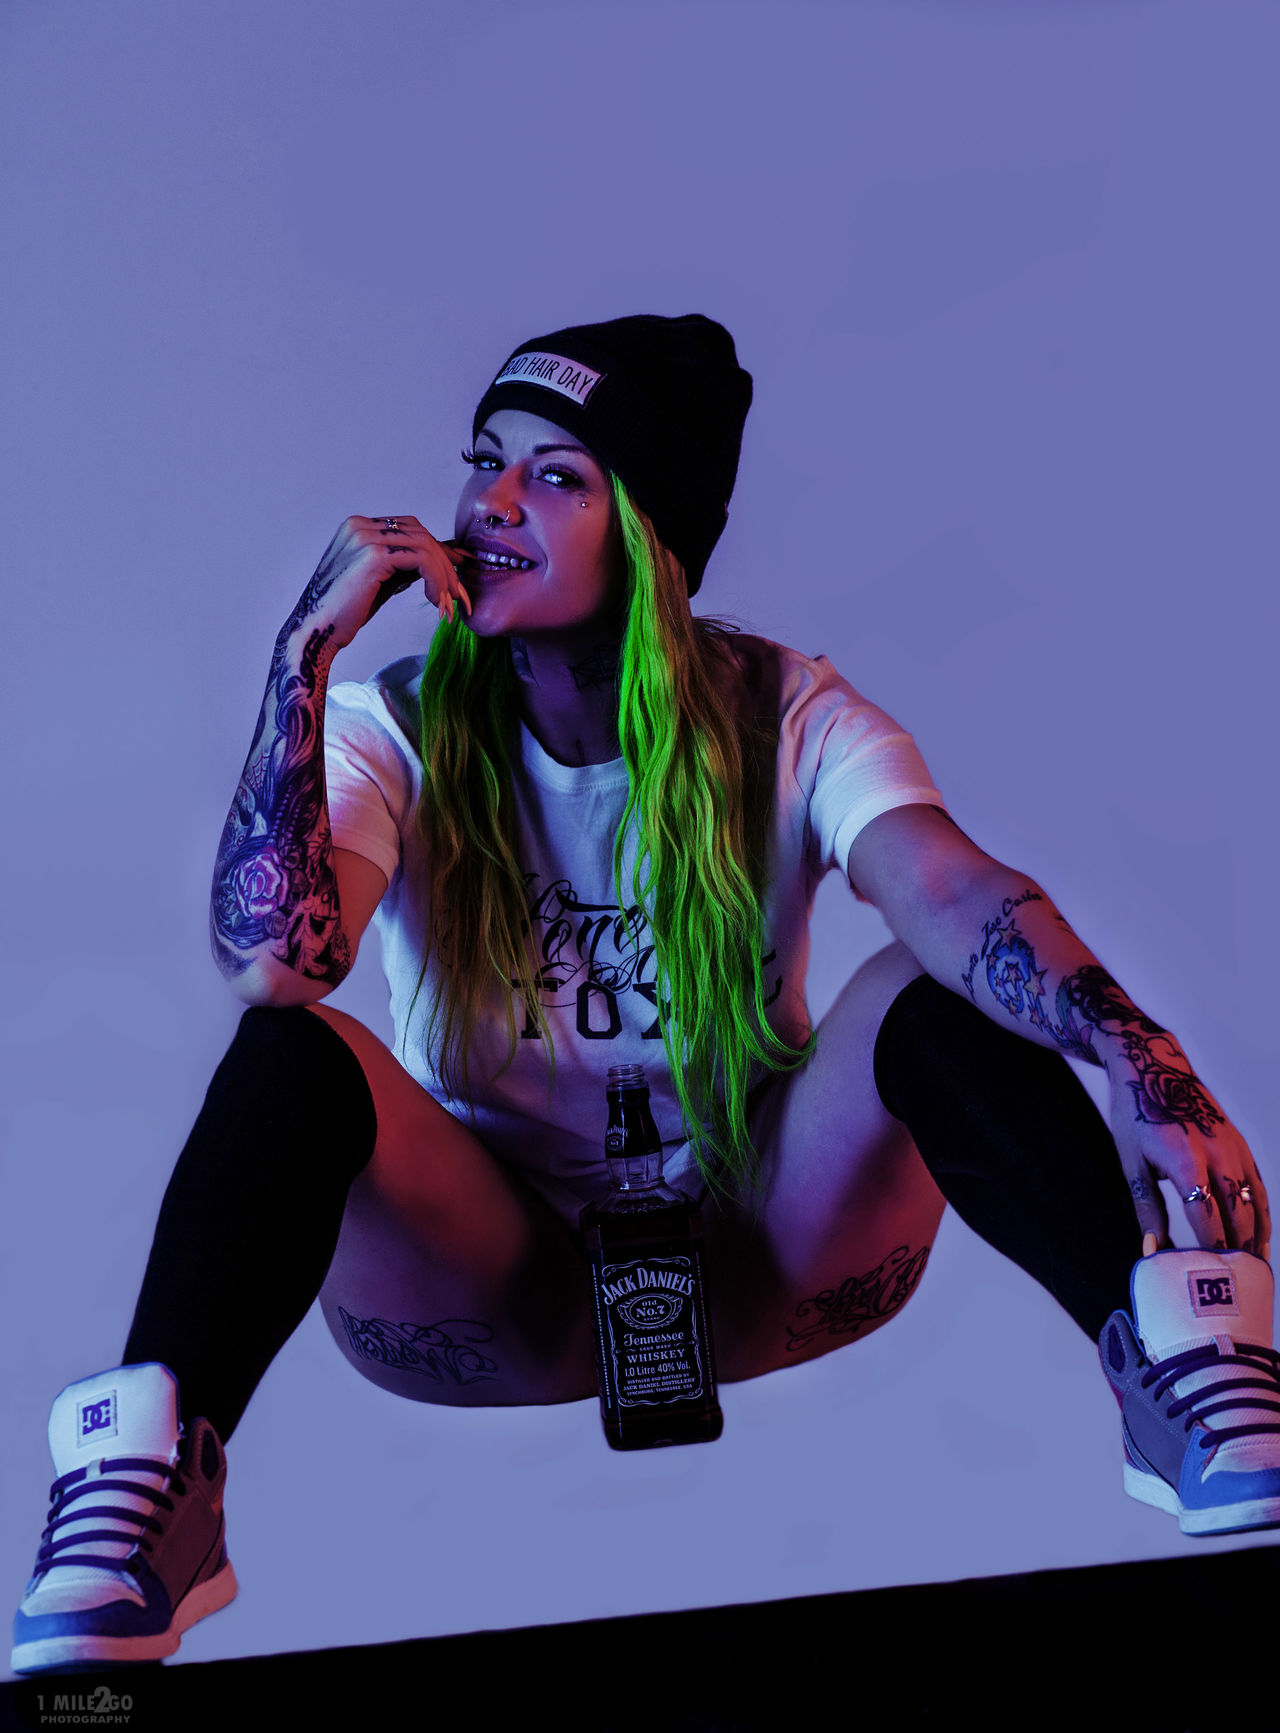 Sexygirl SkateboardLifeStyle Magazine Portrait Of A Woman Punk Style First Eyeem Photo